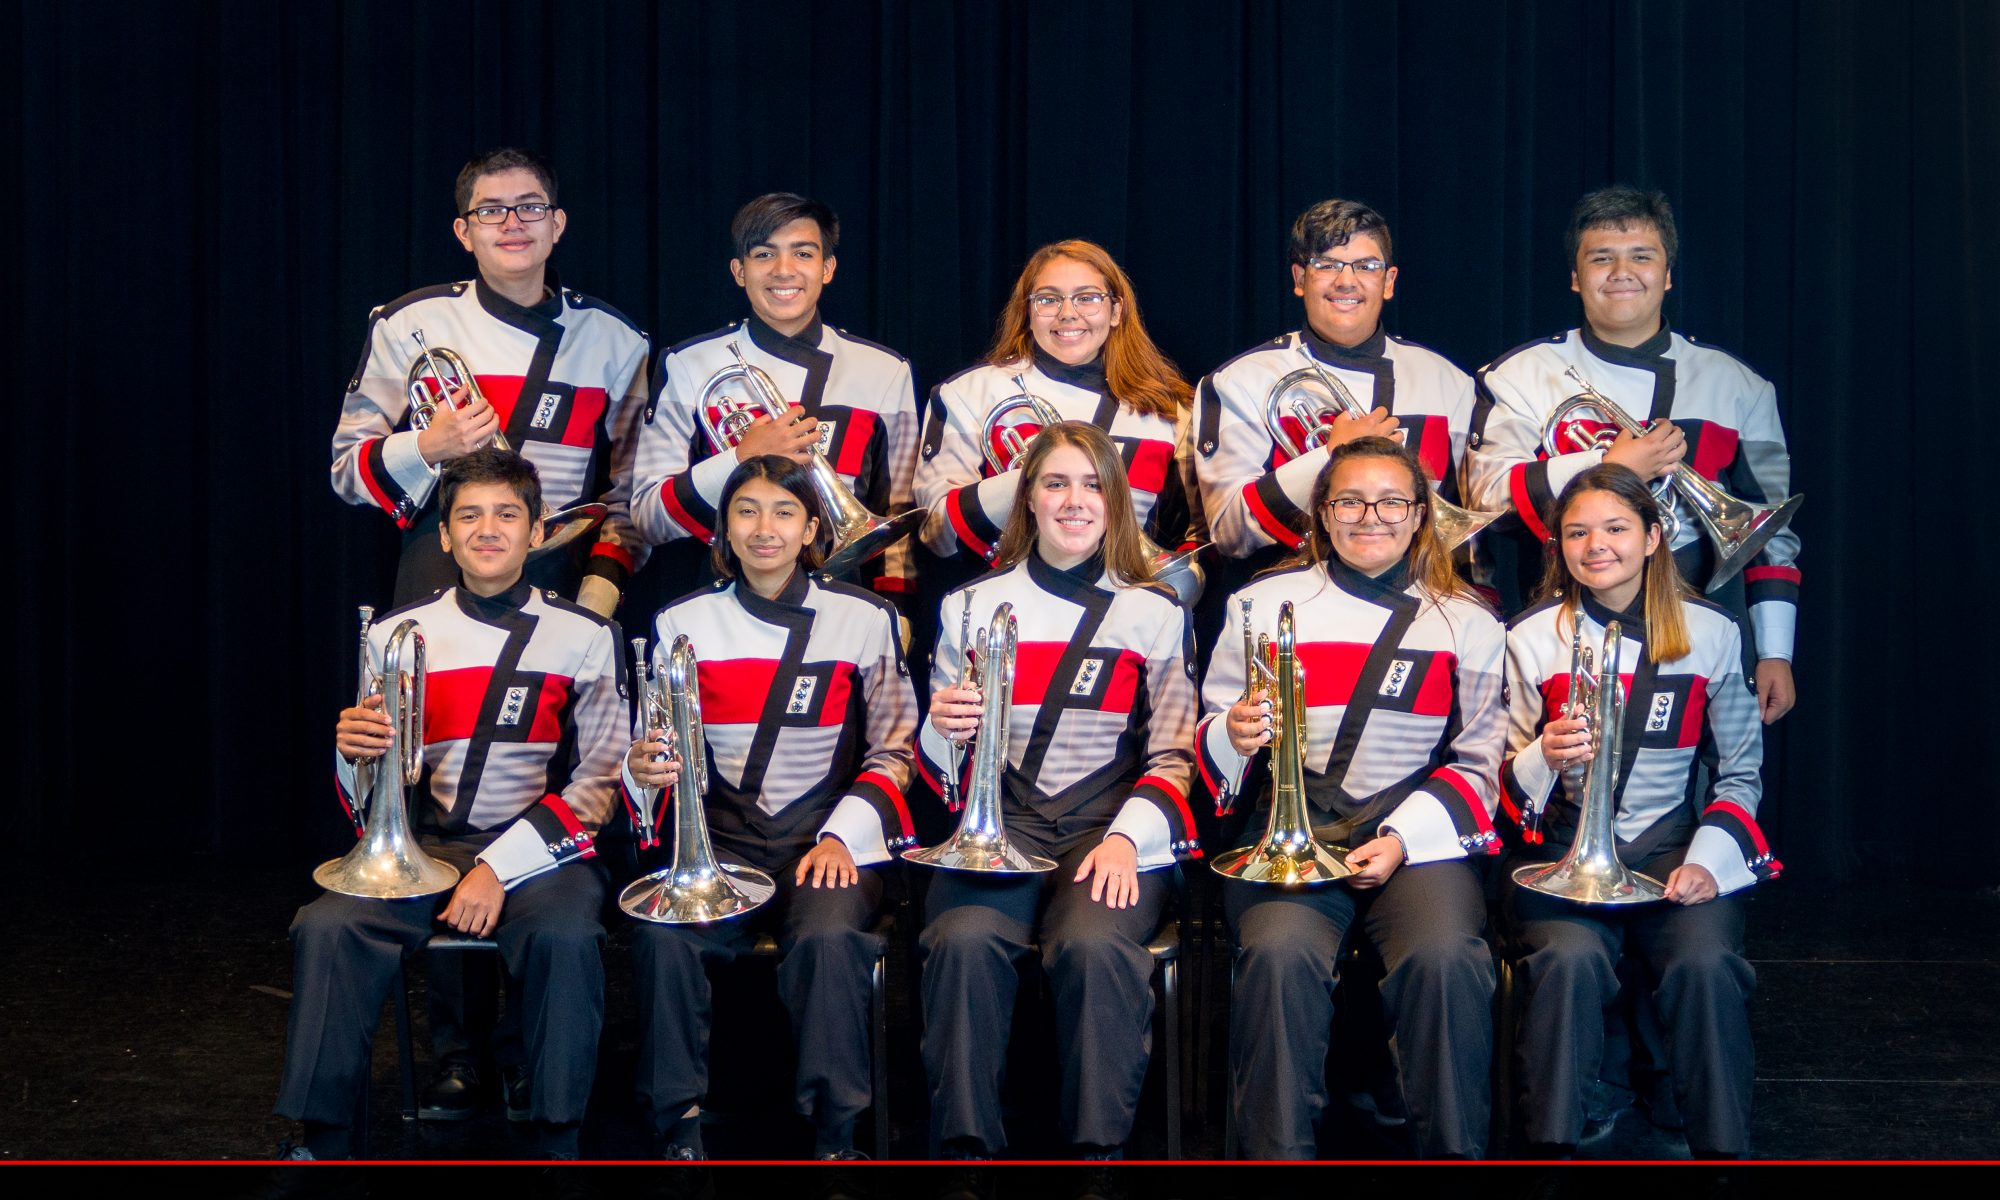 Sharyland Pioneer HS Band